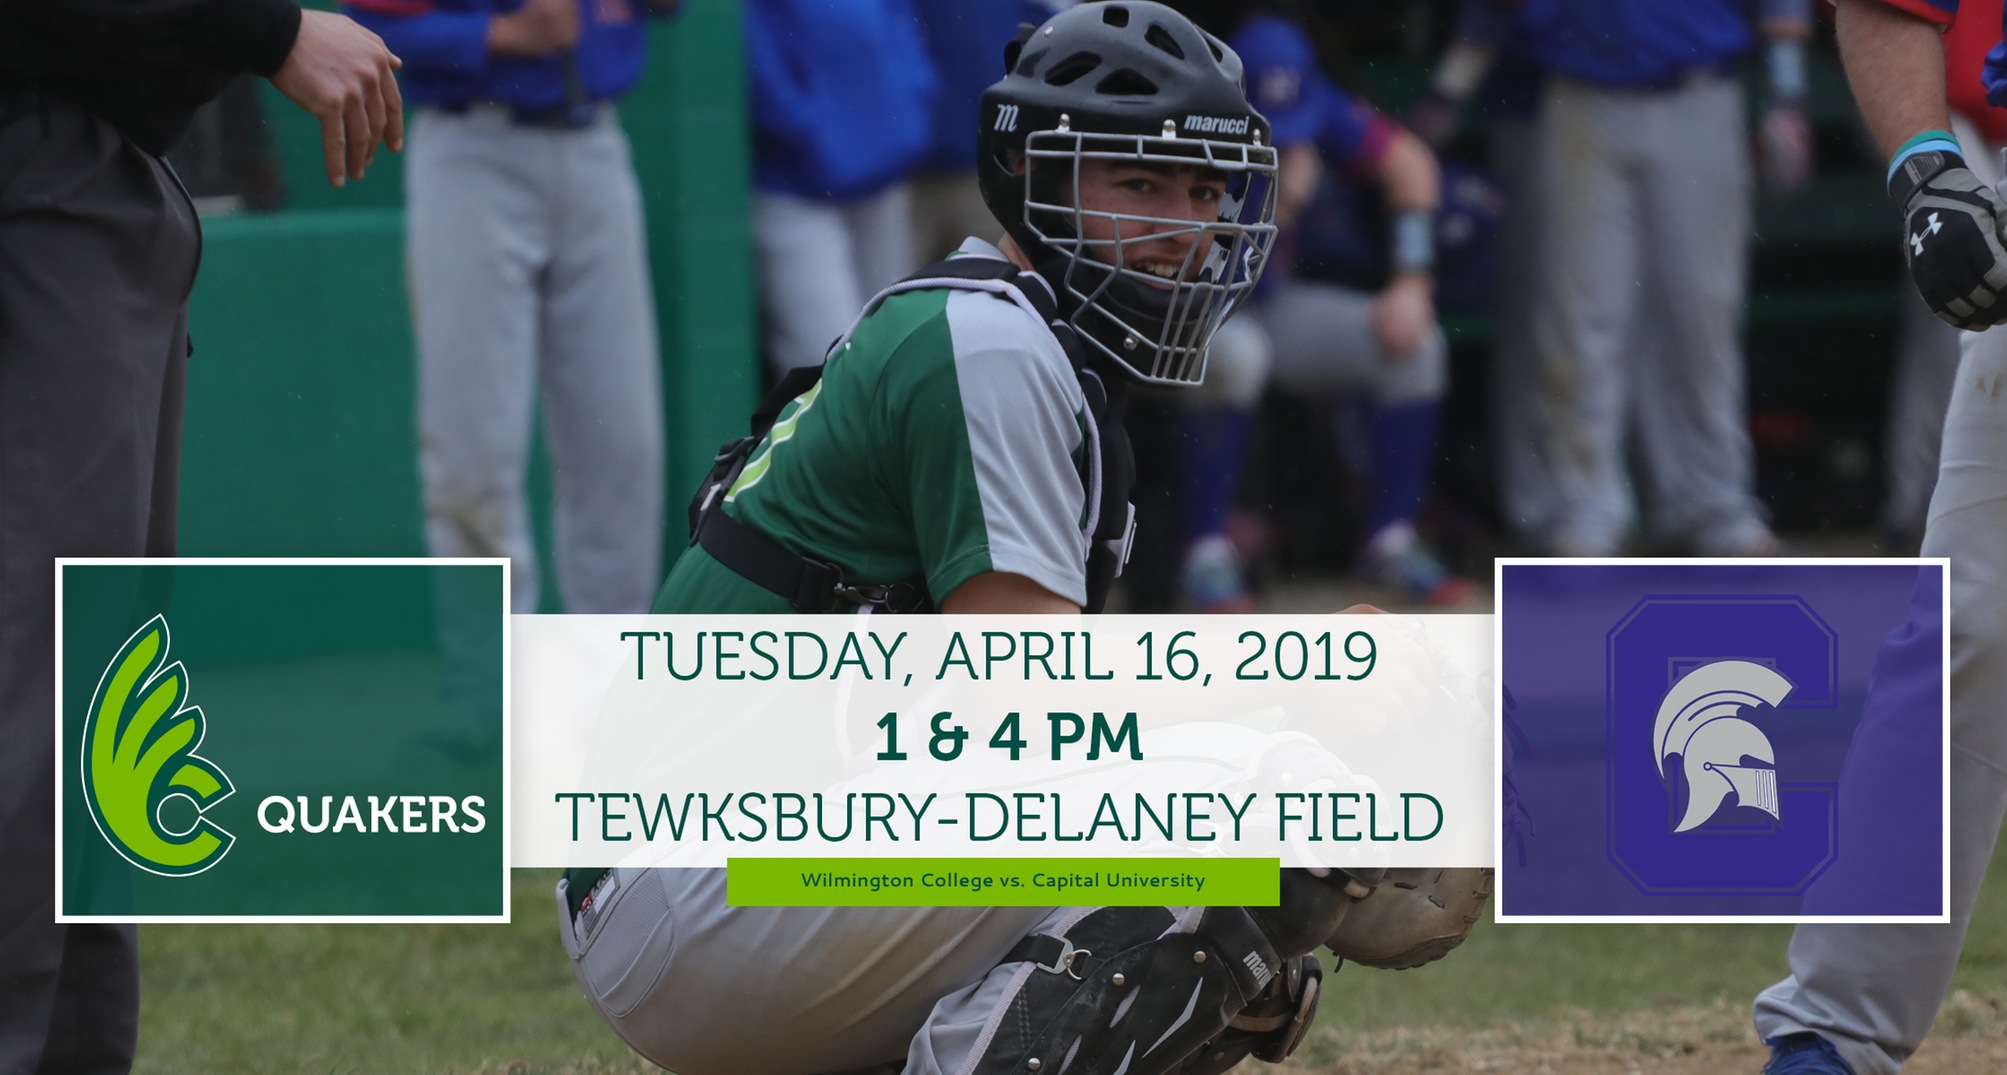 Baseball Looks to Stop Skid Tuesday vs. Capital